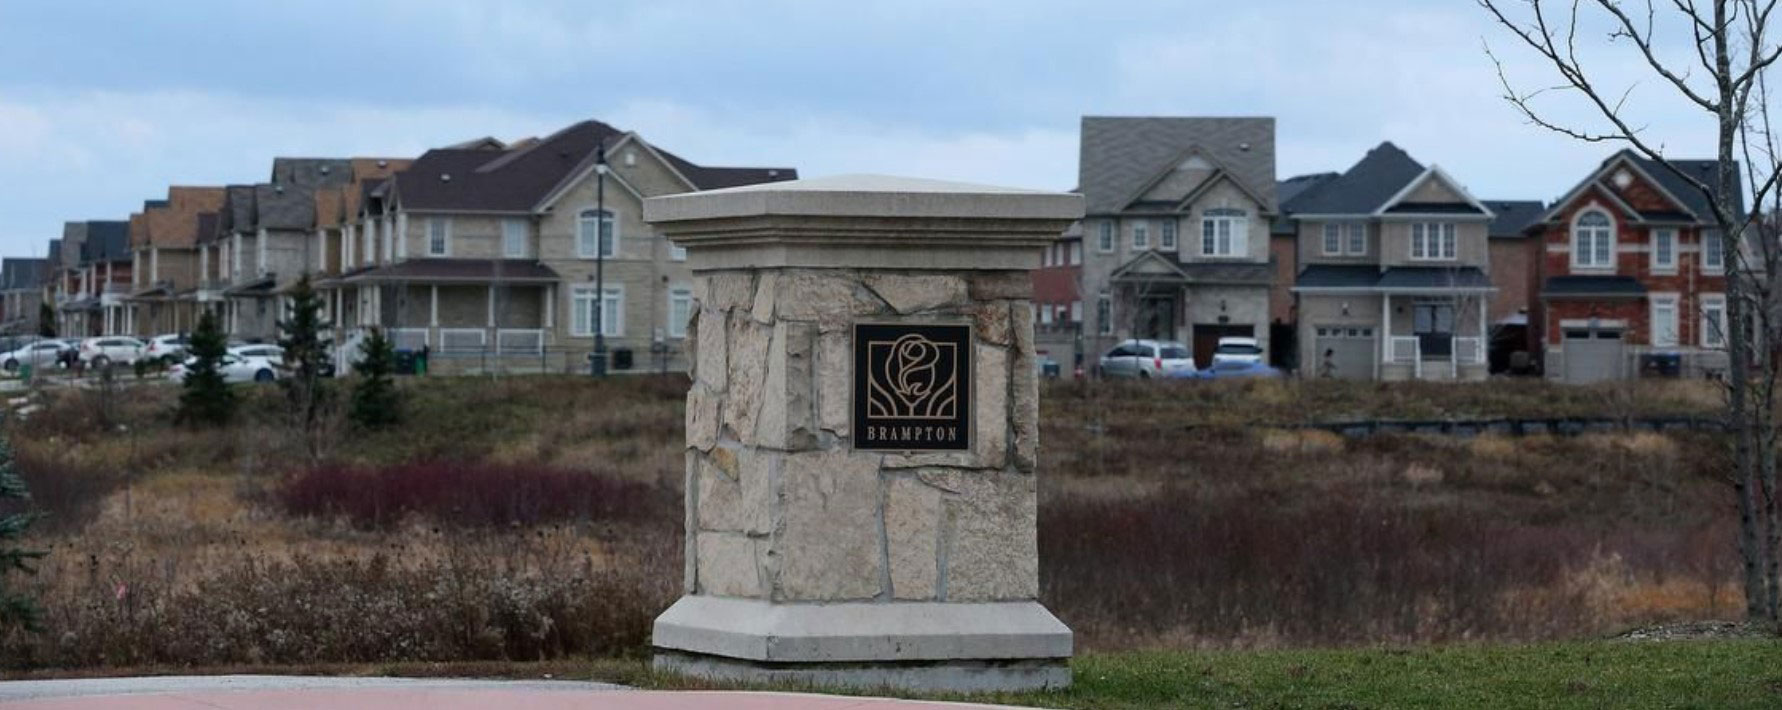 'A very dire situation.' Brampton's northeast corner tops list of 30 GTA neighbourhoods with alarming rates of COVID-19 infections